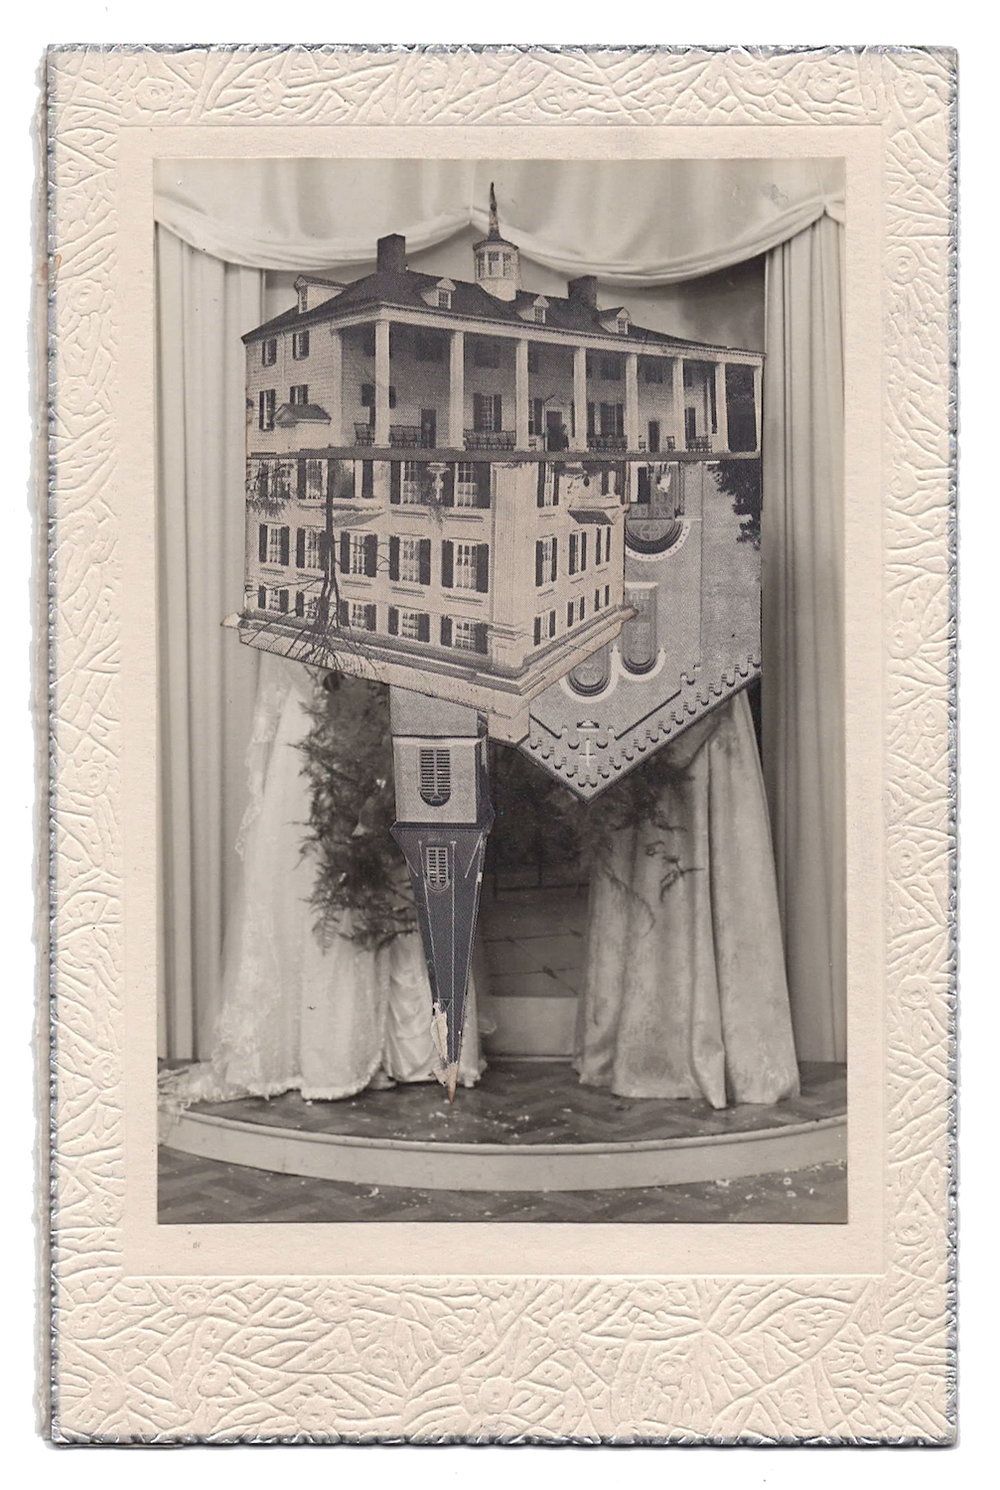 Wedding 12, 2016, Found Photographs & Collage, 7 x 4 1/2 inches